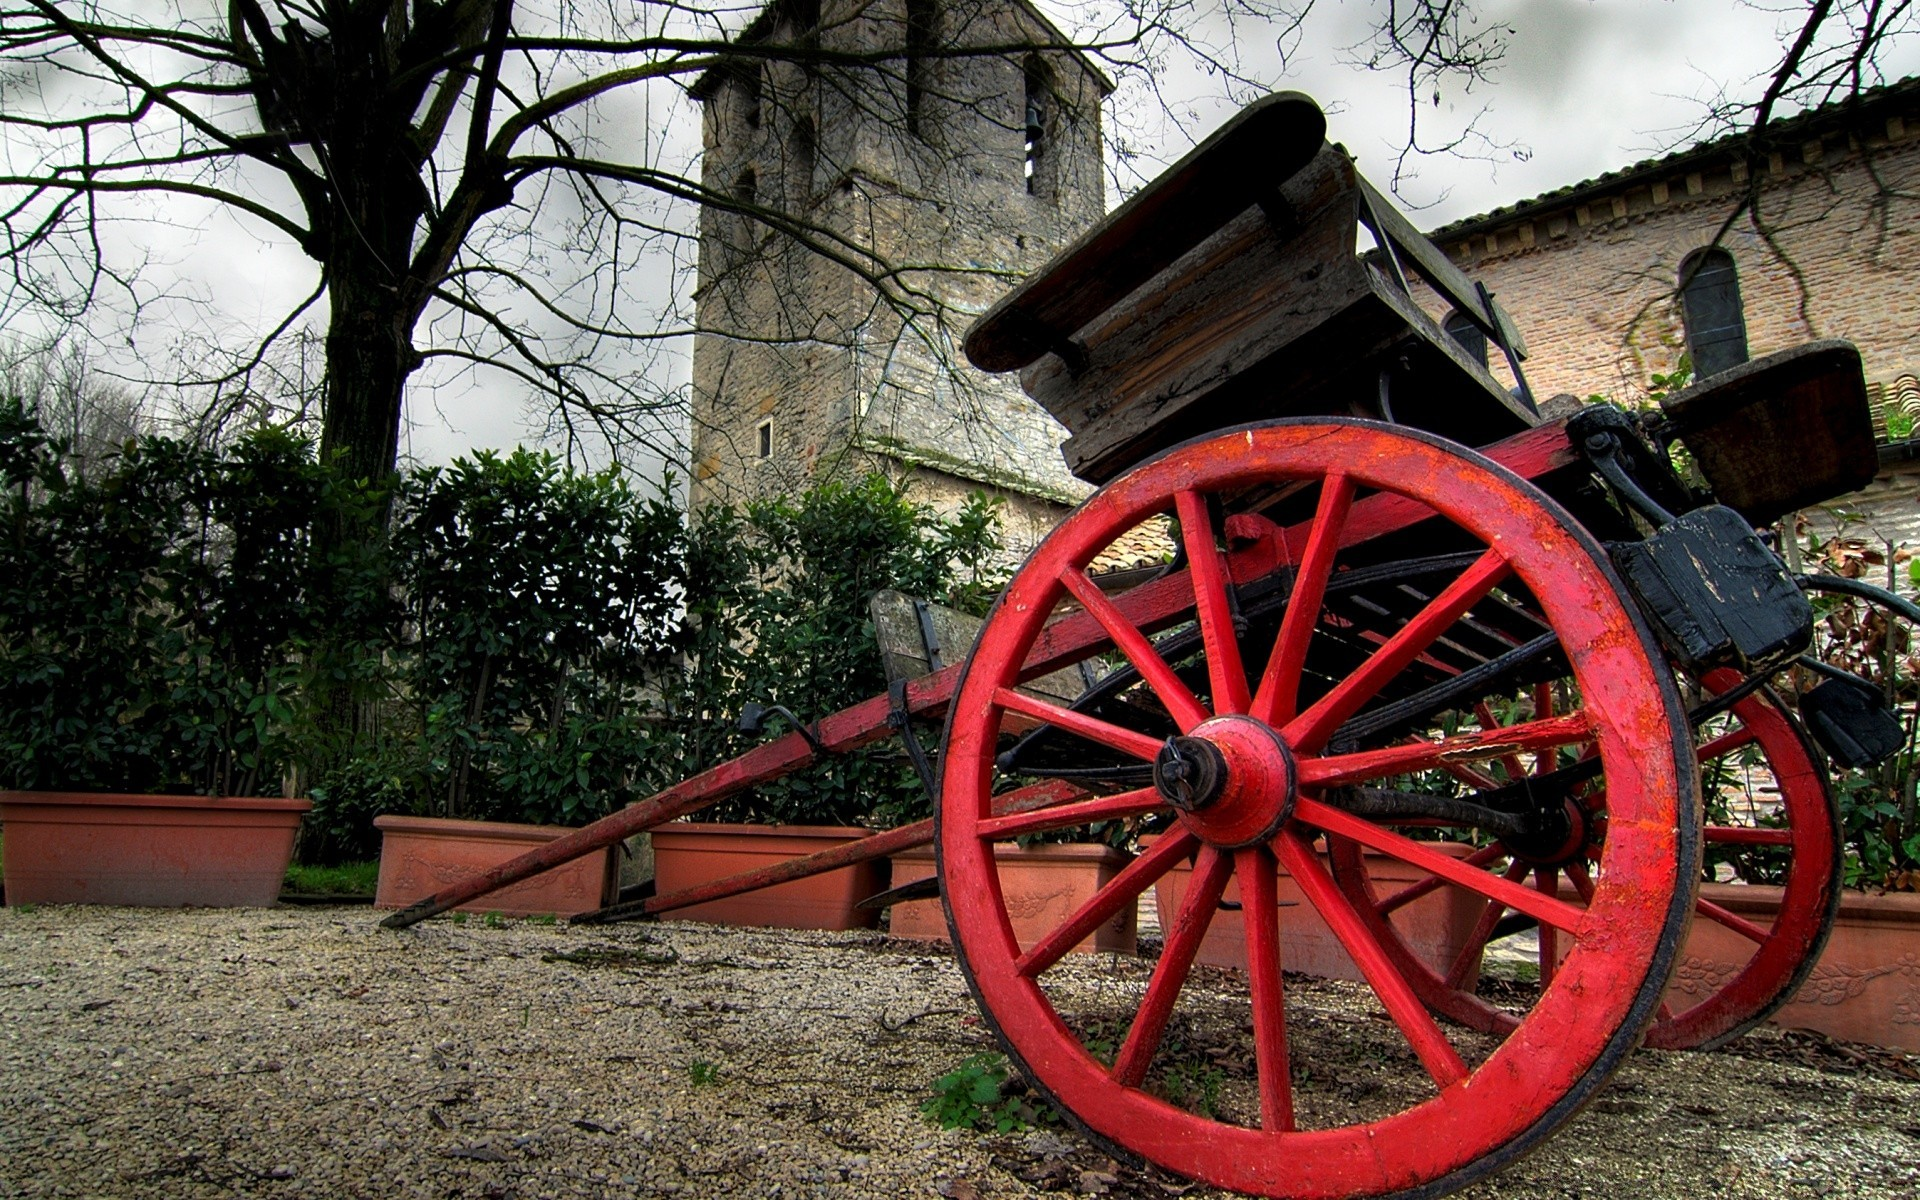 europe travel old vintage wheel outdoors carriage museum cart antique transportation system building military